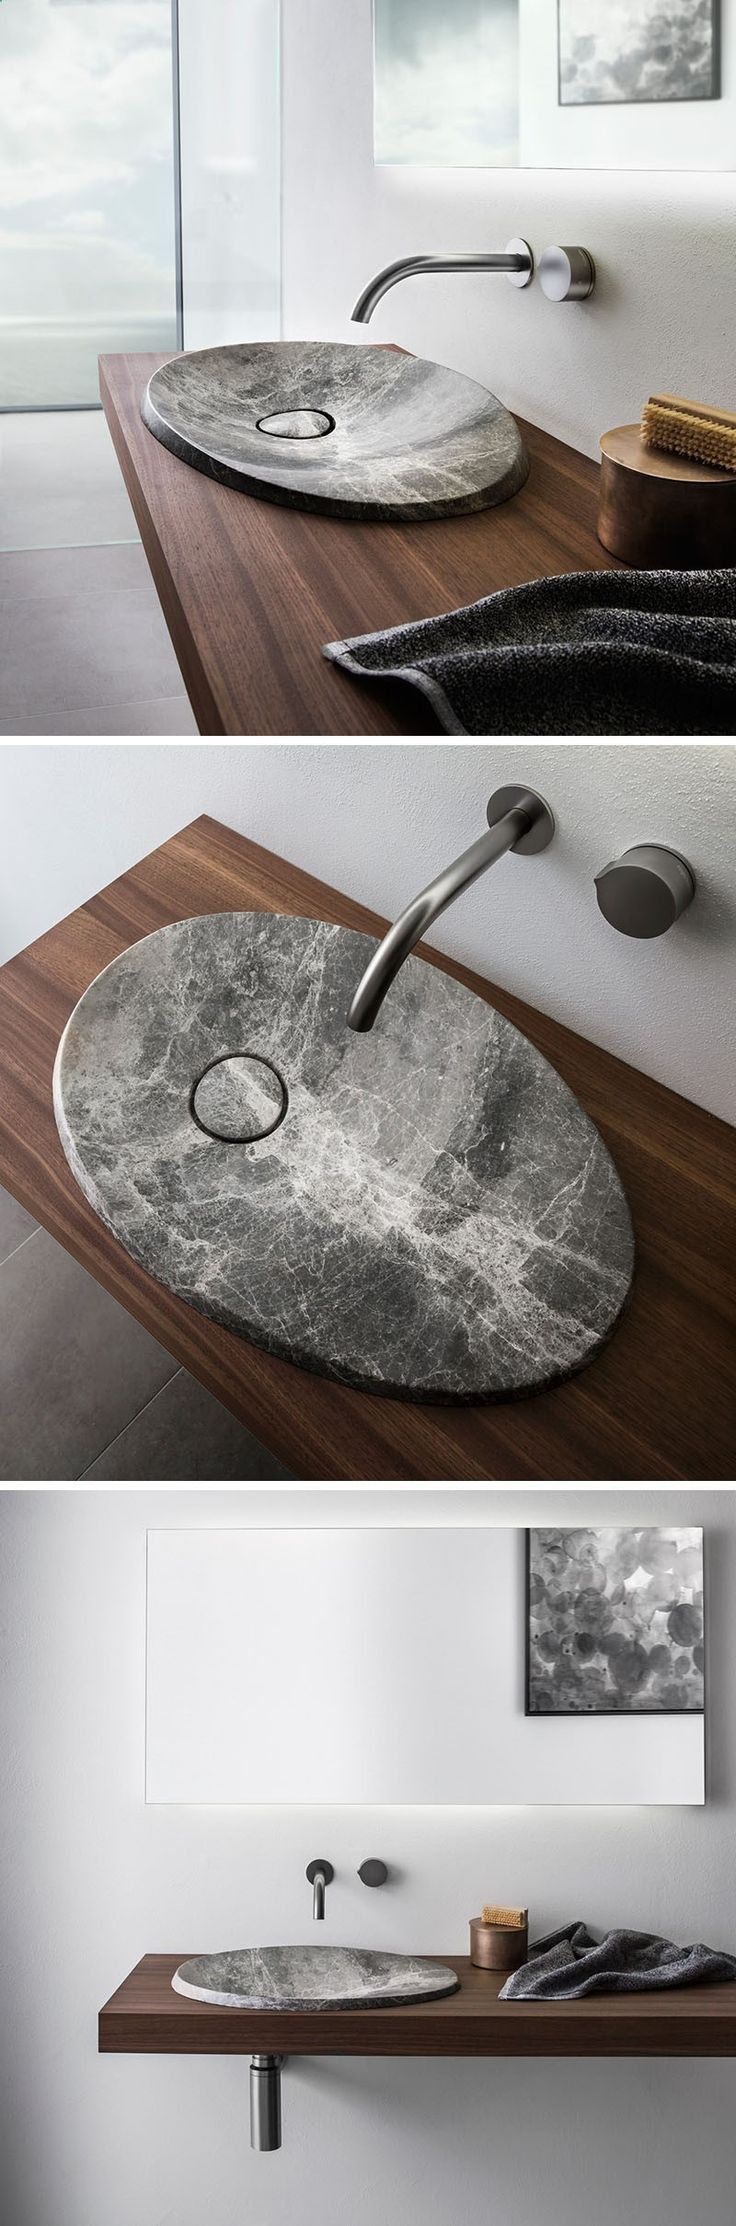 The bathroom also features a stainless steel sink and a full - This Modern Bathroom Sink Made From Natural Stone Sits On A Floating Wood Vanity And Has